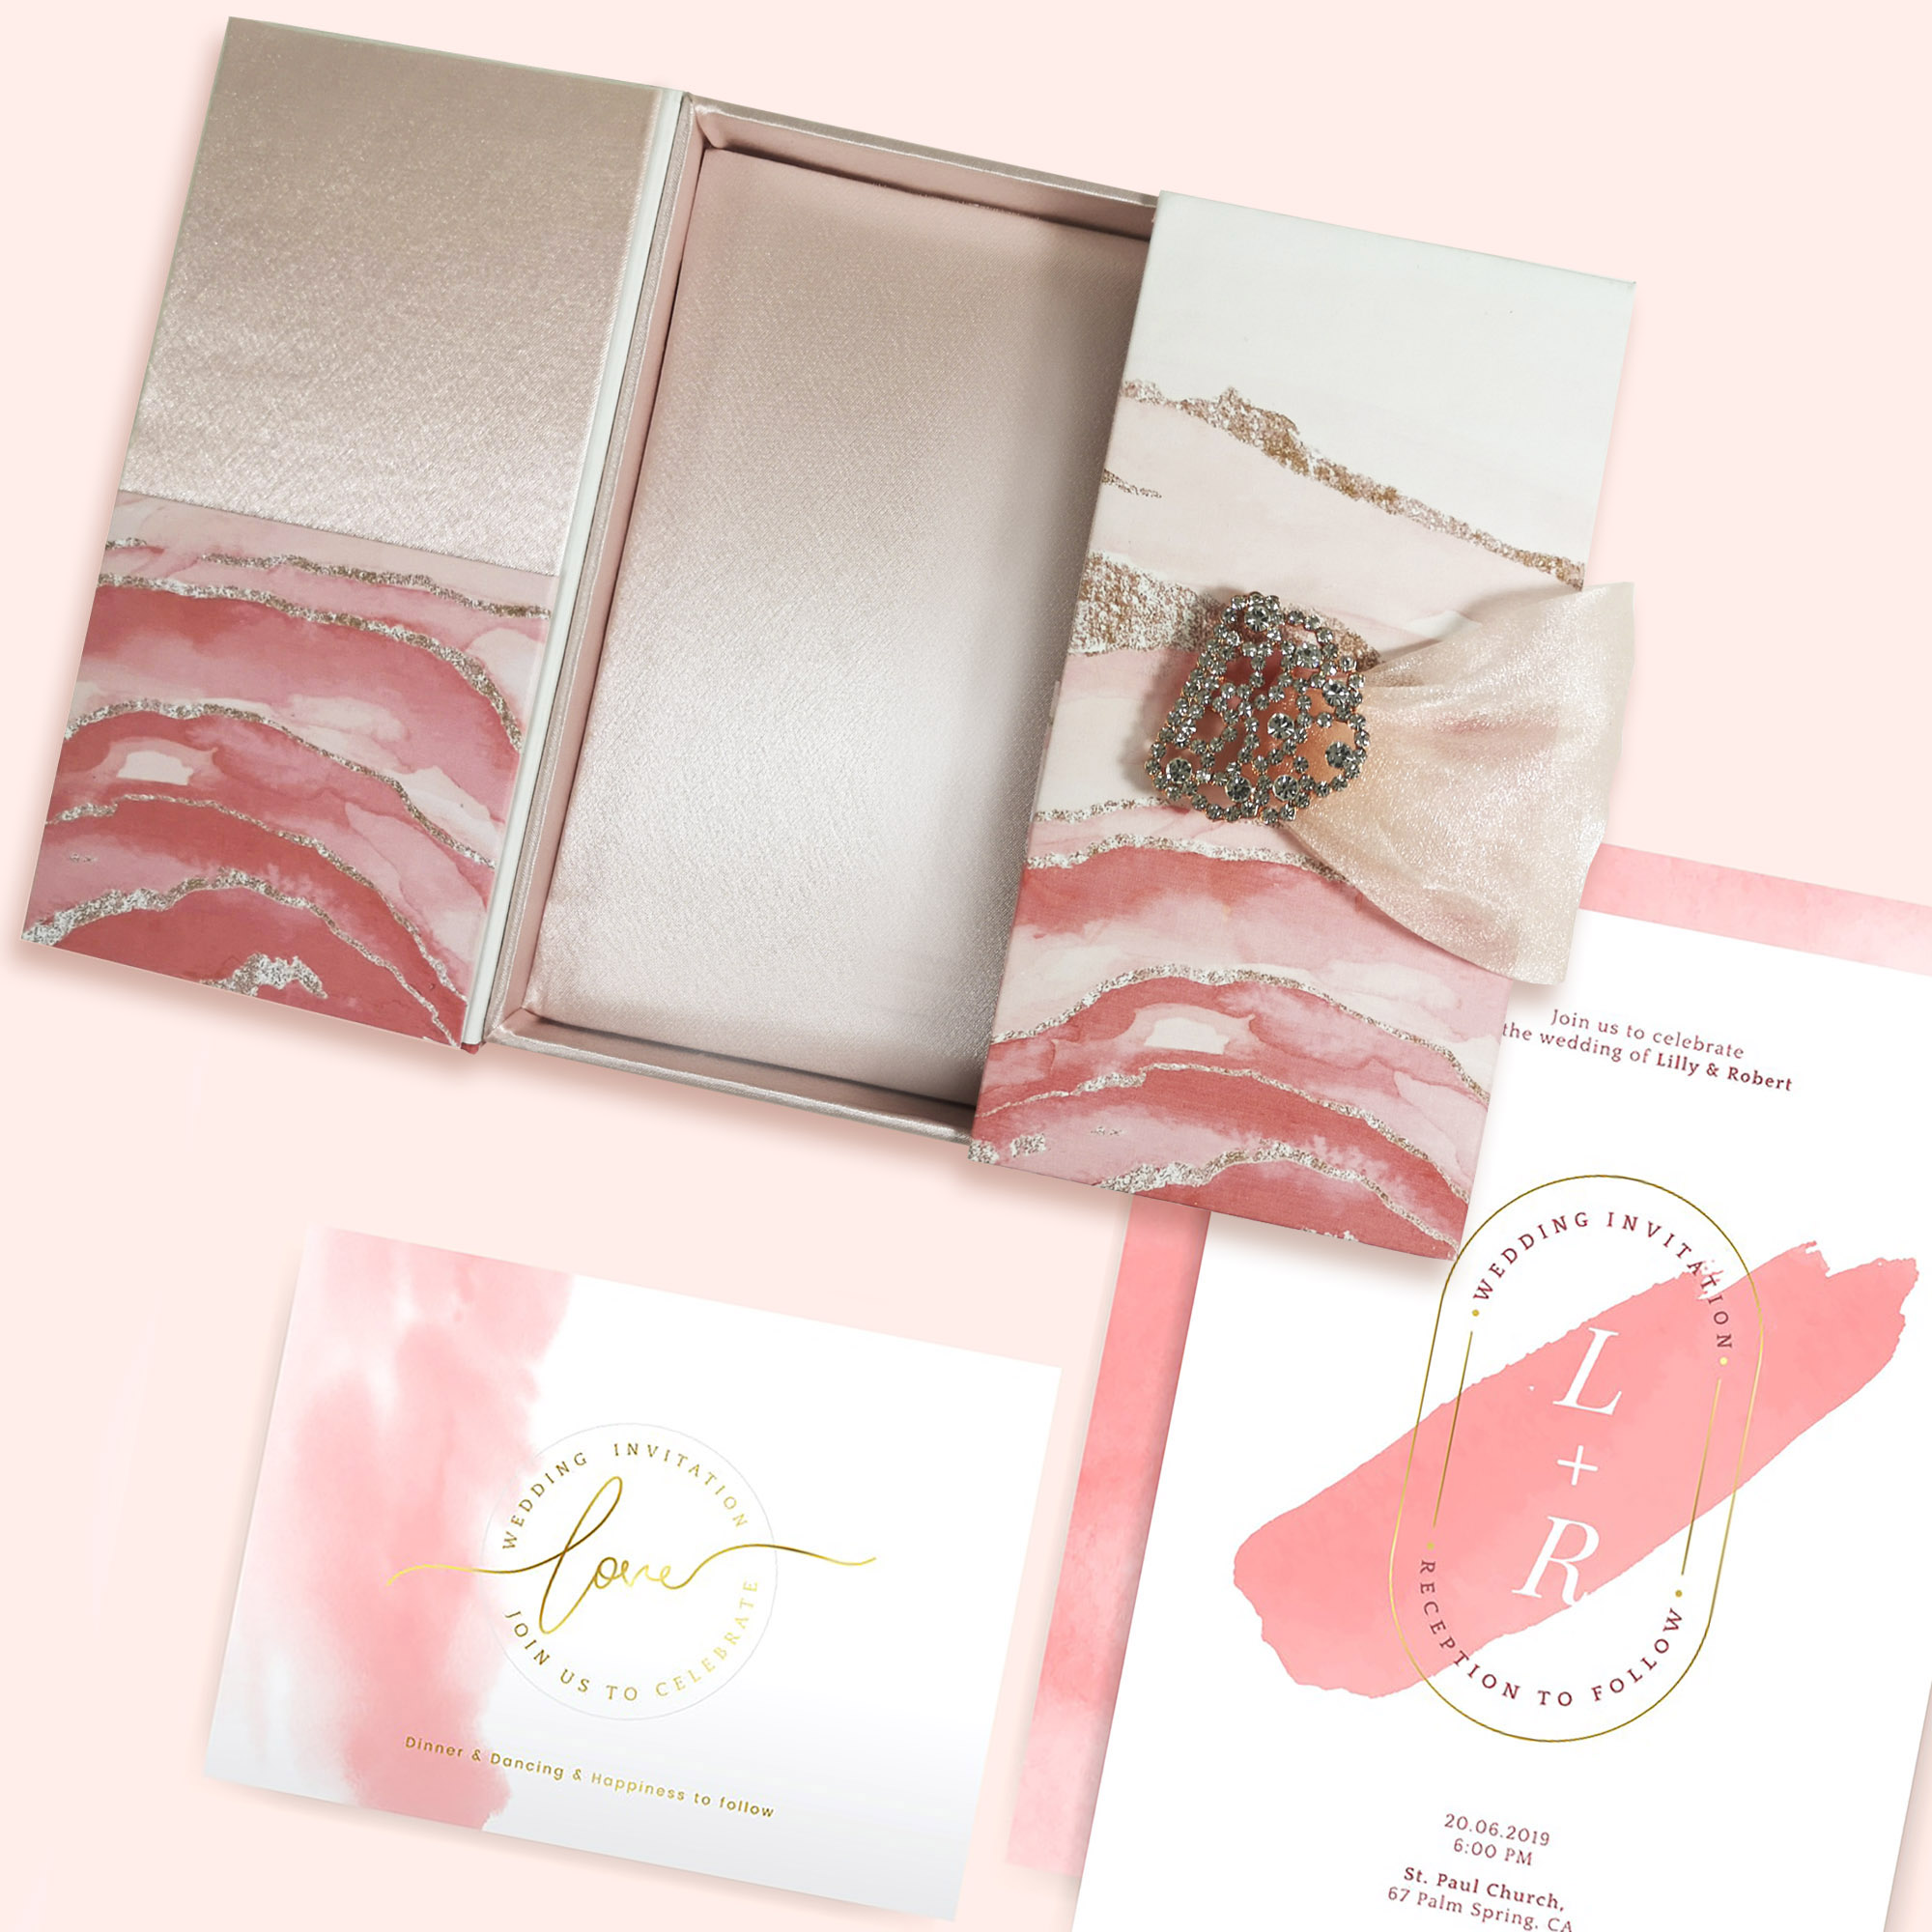 Luxury boxed wedding invitation set in blush pink